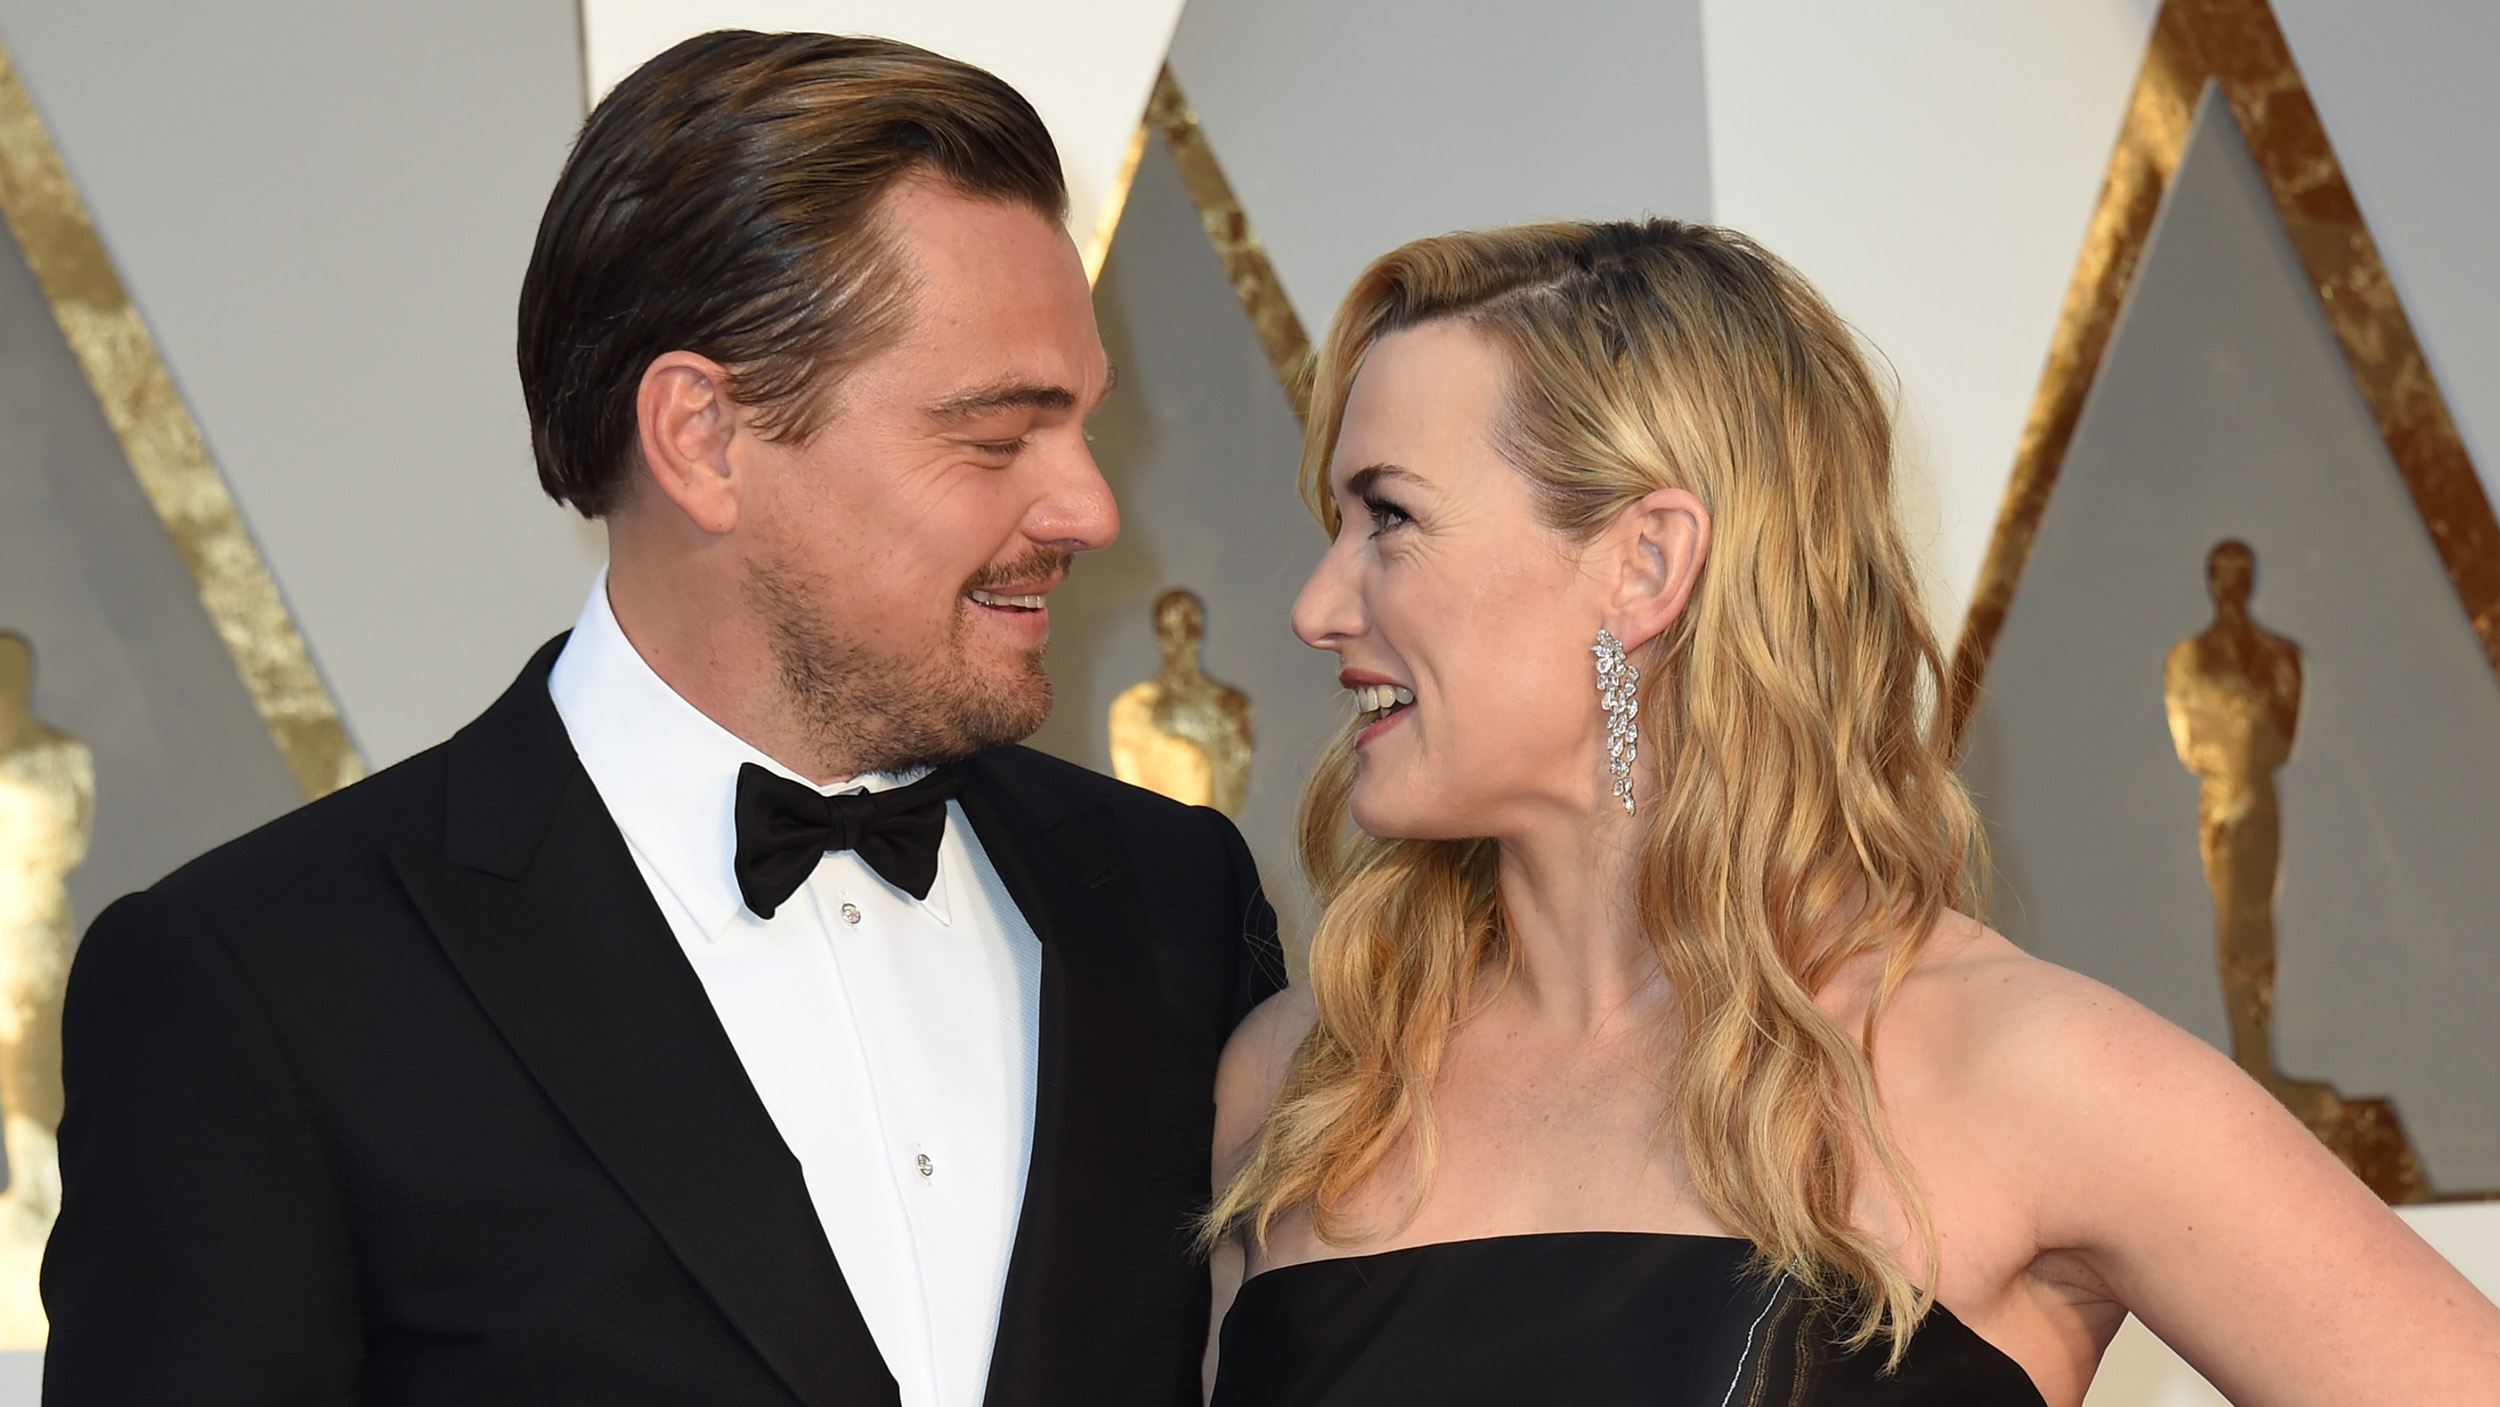 Pinocchio Live Action Movie Disney 1201468686 together with Leonardo Dicaprio Kate Winslet Reunite Oscars Inter  Explodes T76156 additionally Kris Jenner Hot 2017 GHbpavWi2aamNmljQP6JJz54zEjr6t 7Cv HxRnd1I 7Cyk moreover 2012 08 02 Tom Daleys Speedo Was The Hardest For Stella Mccartney To Design moreover Tom Cruise Edge Of Tomorrow Gets Repositioned As Live Die Repeat On Home Video 1201283383. on oscars 2017 mc